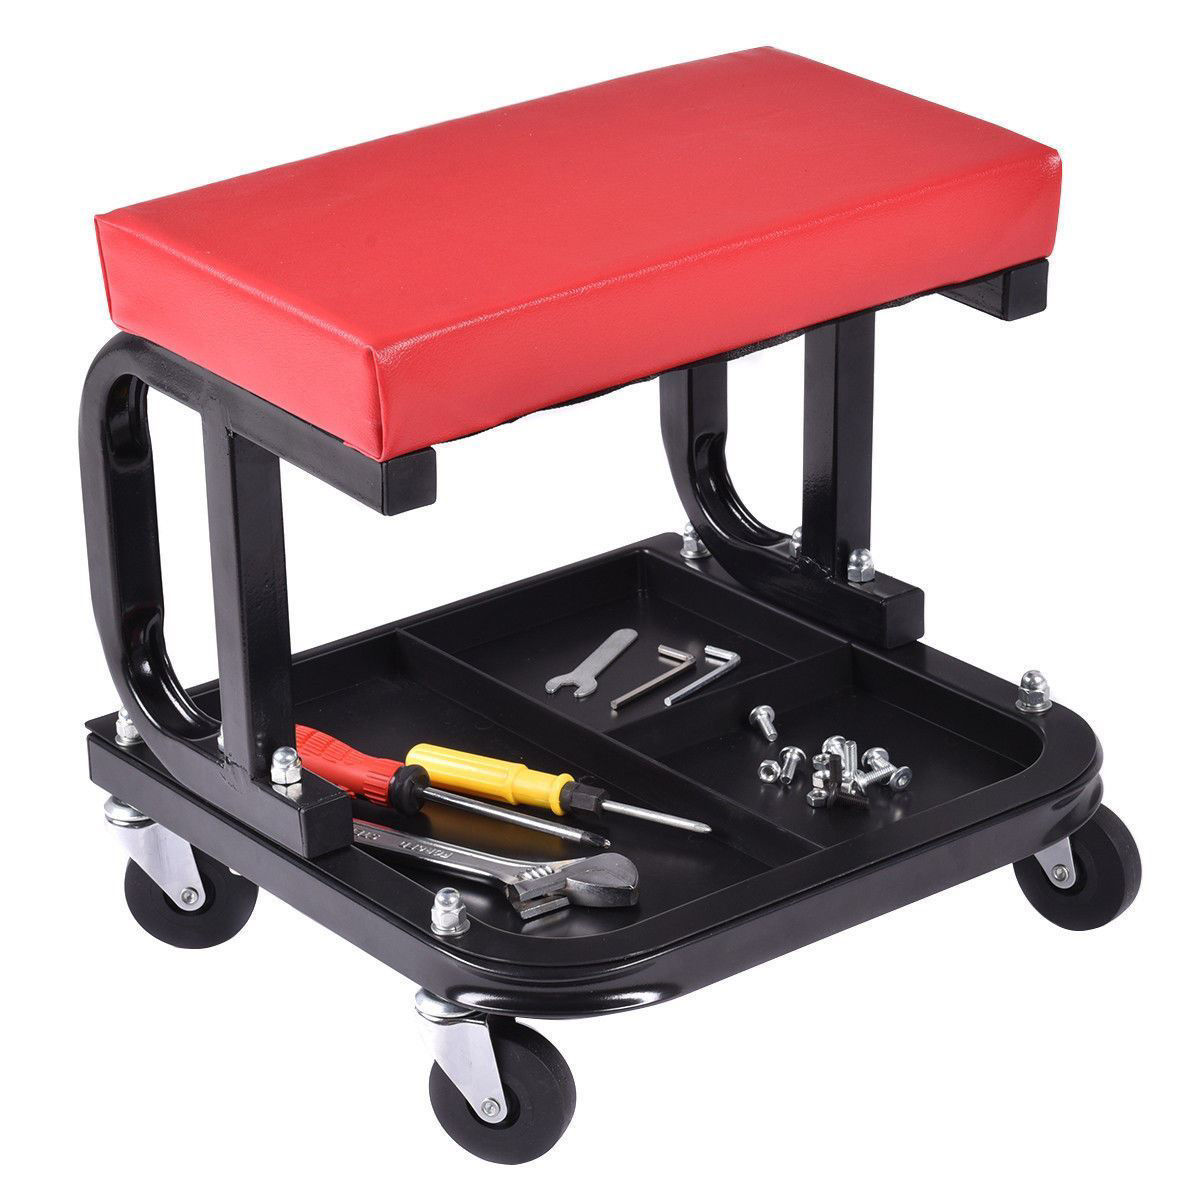 Picture of Mechanic Stool Chair for Repairs with Tray